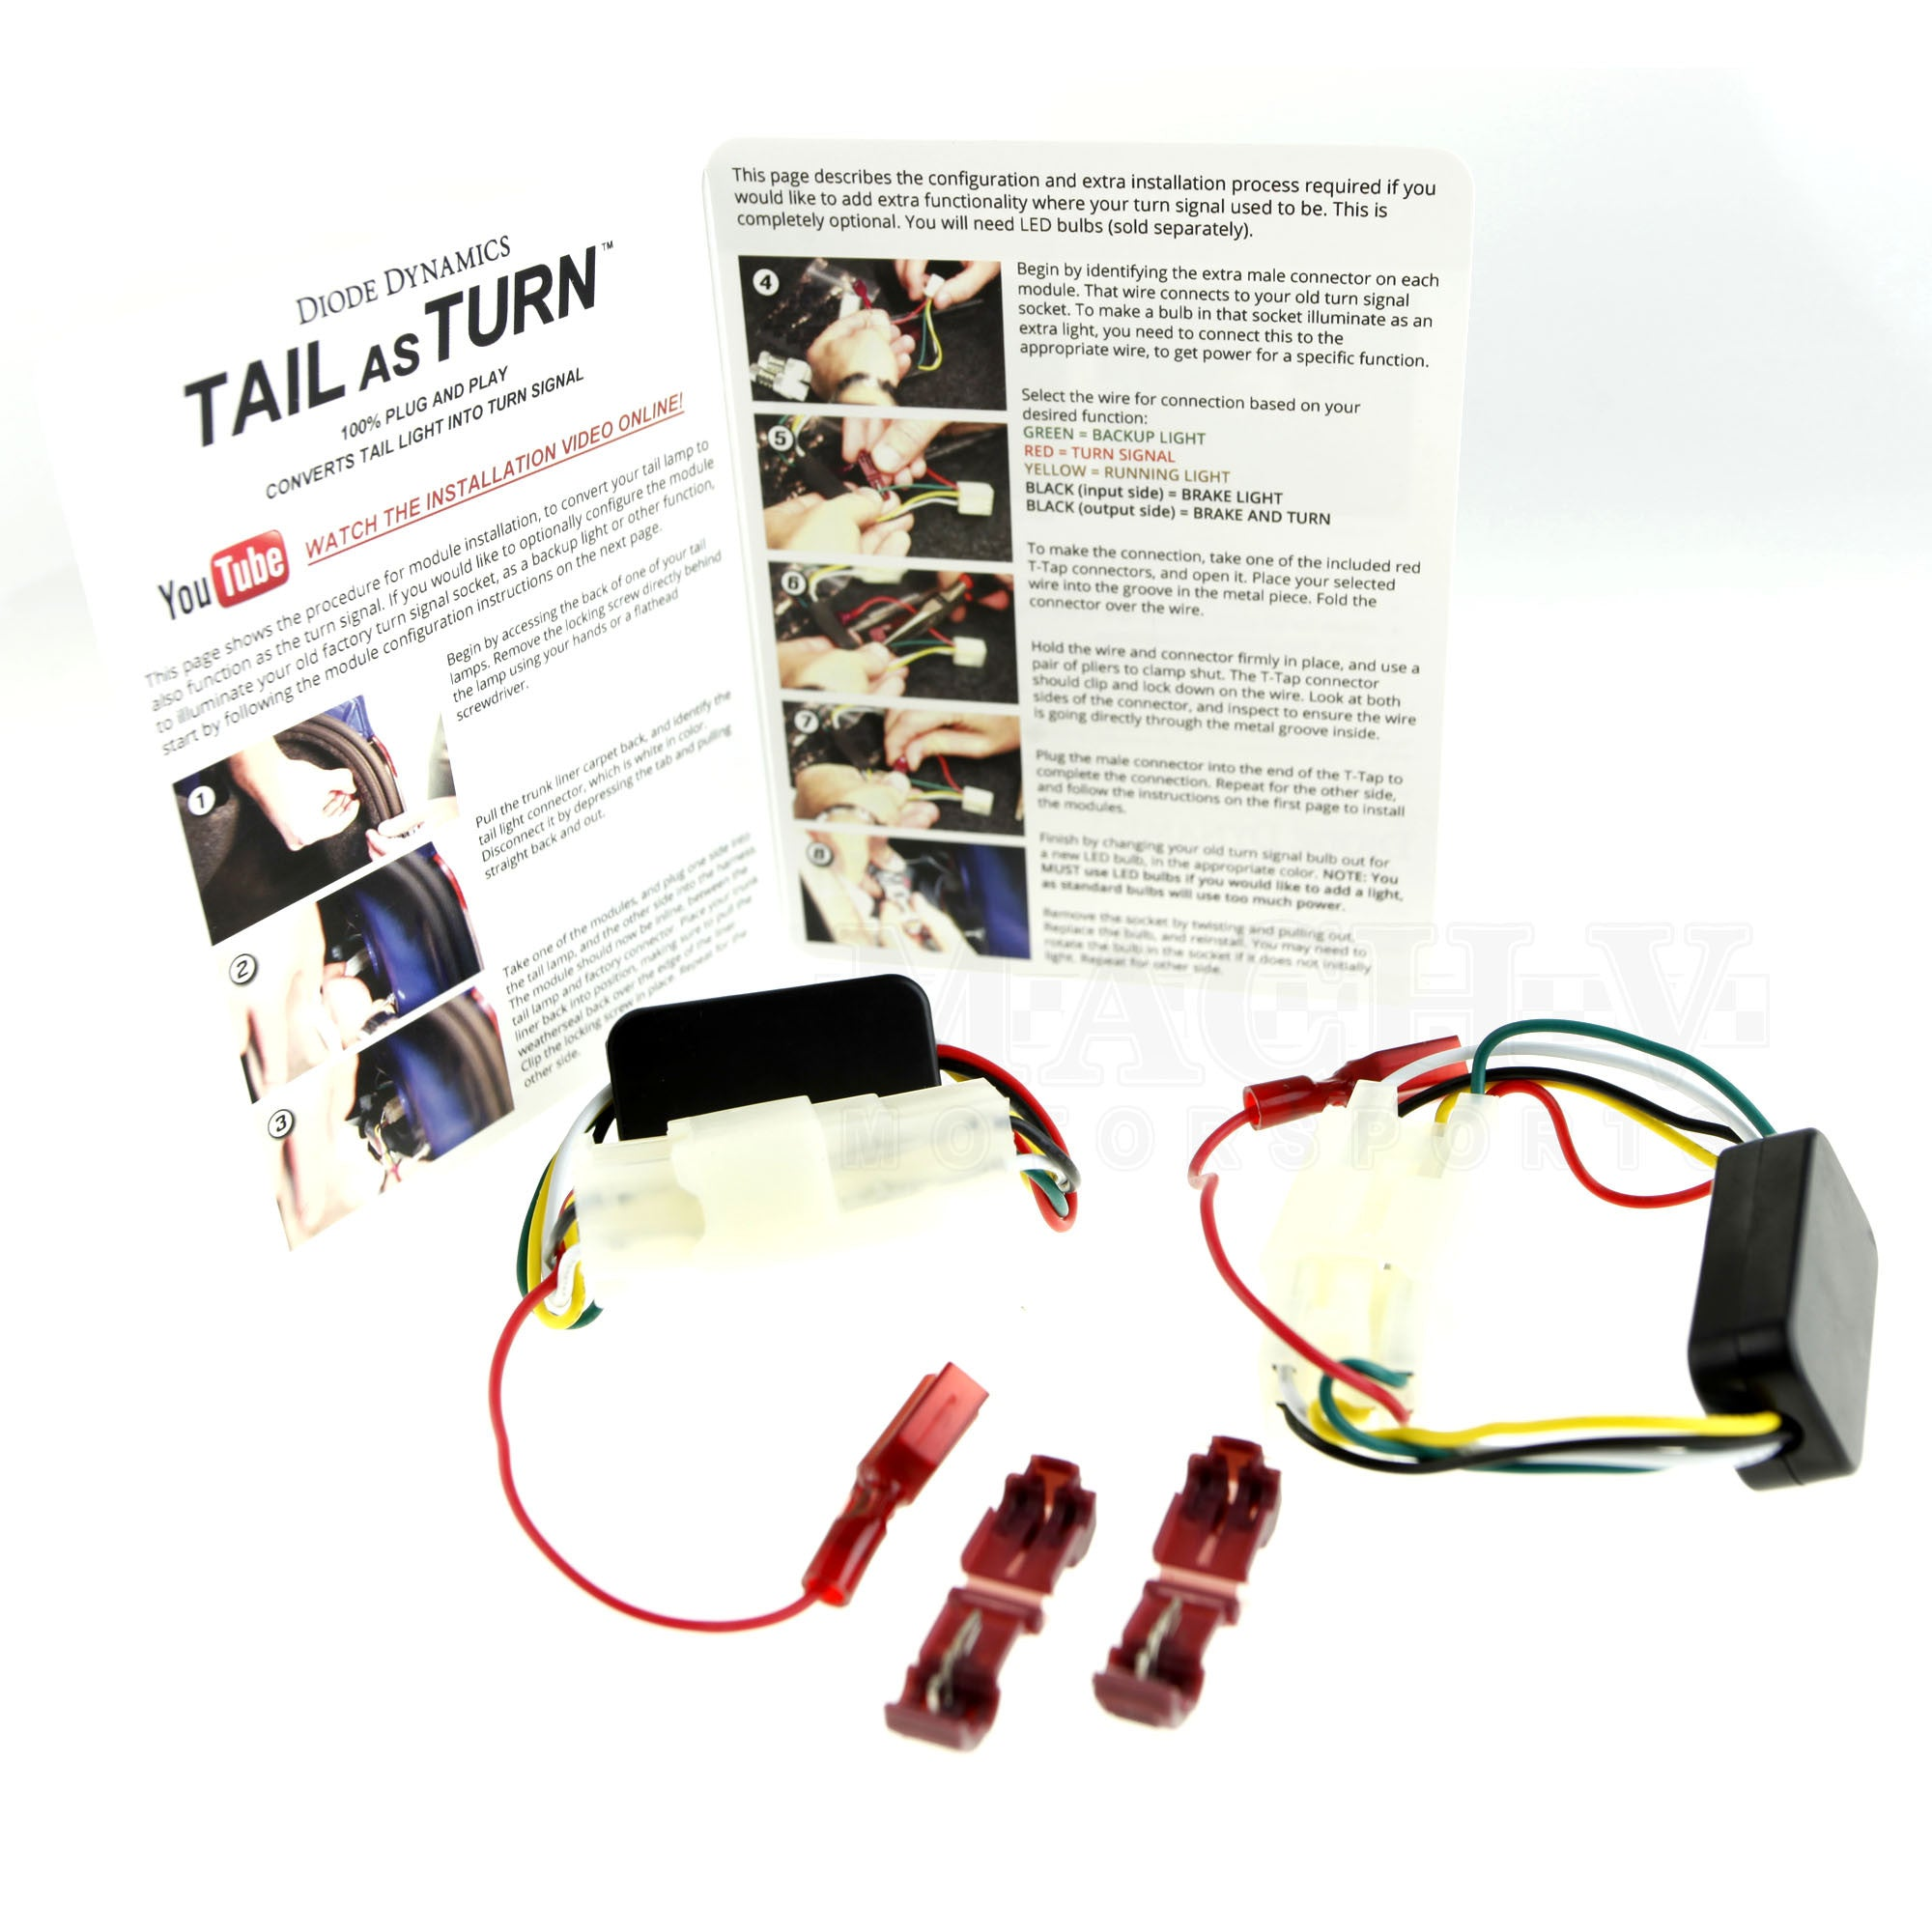 Tail As Turn Backup Module 2008 2014 Wrx Hatchback Audi A5 Led To Facelift Lights Adaptor Wiring Automotive 5000 Compatible With Car Bulbs